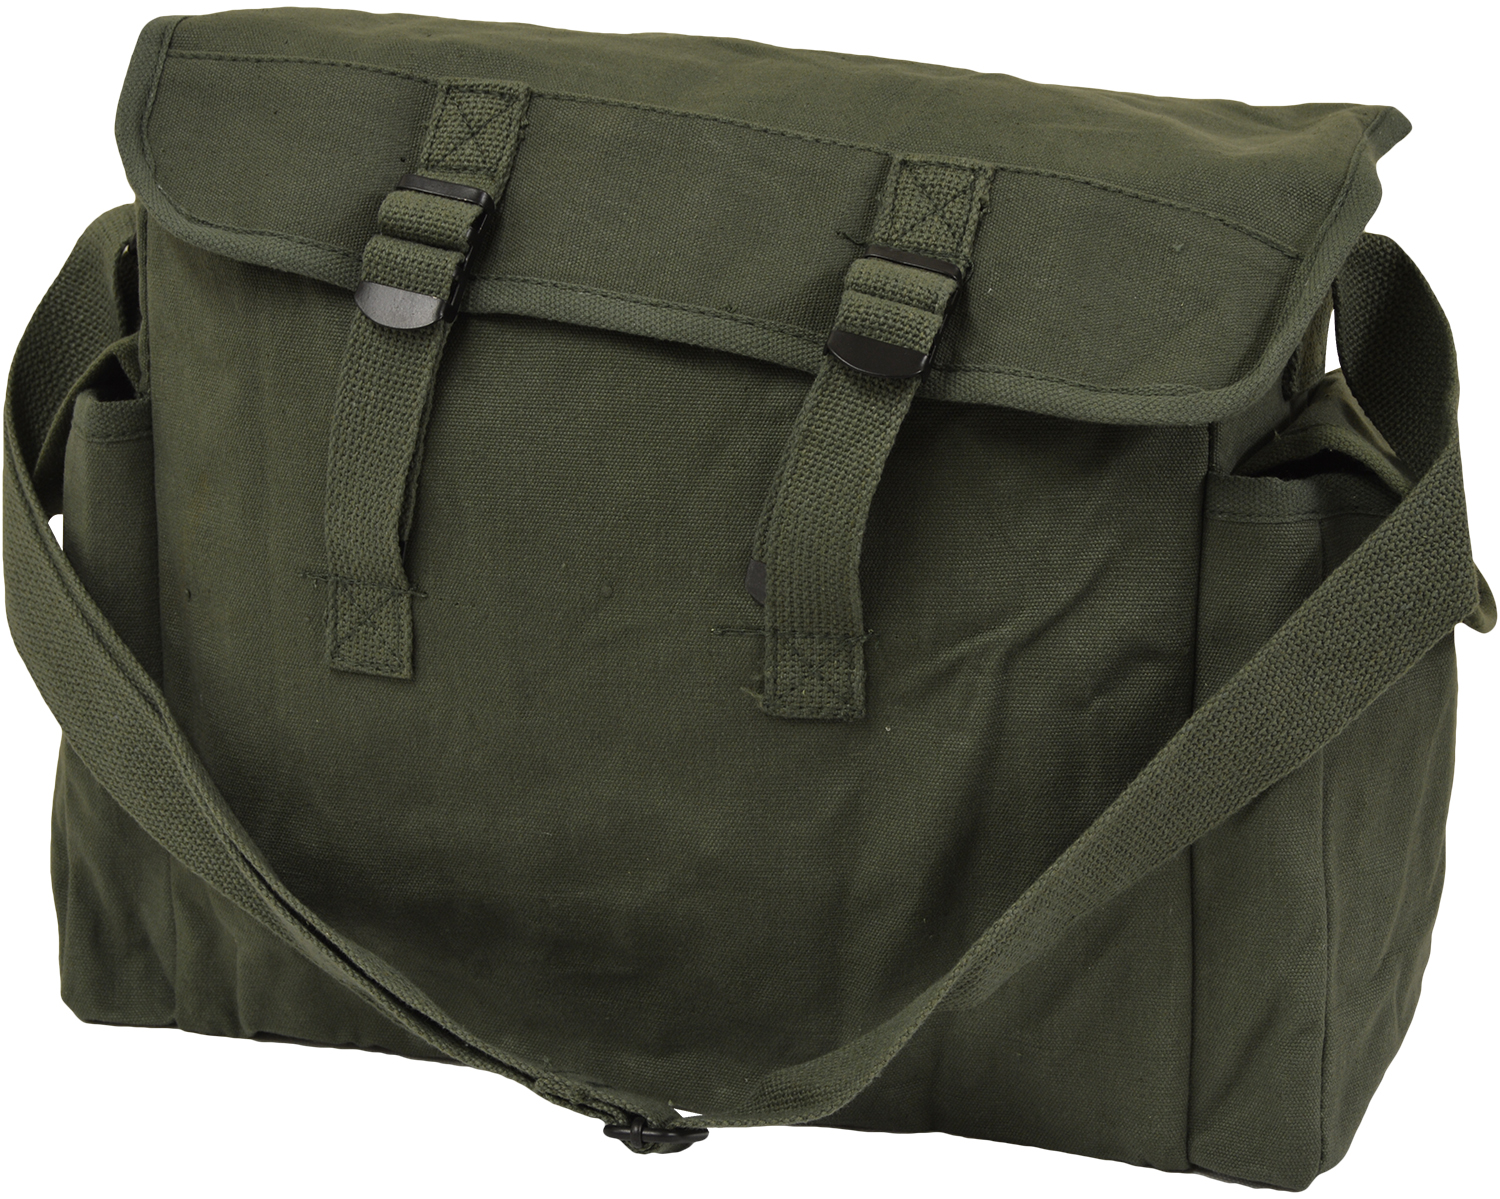 Large olive green canvas haversack messenger bag military satchel ebay for Does olive garden give military discount